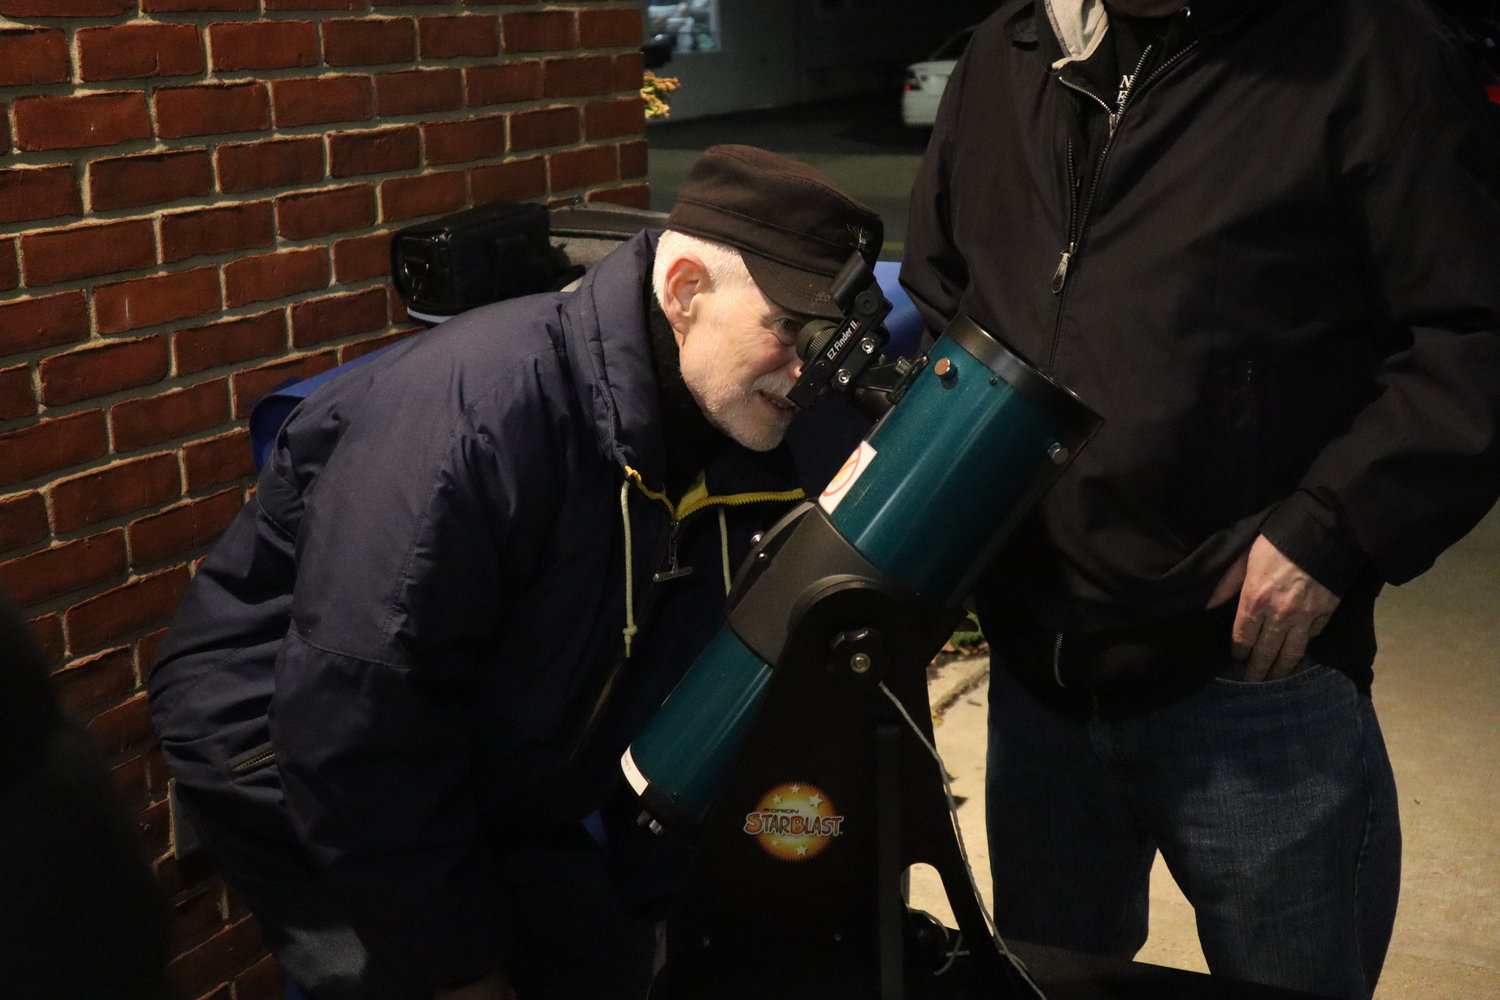 The younger attendees were not the only ones enthralled — Bellmore resident Jerry Altman also peeked through the new scope.